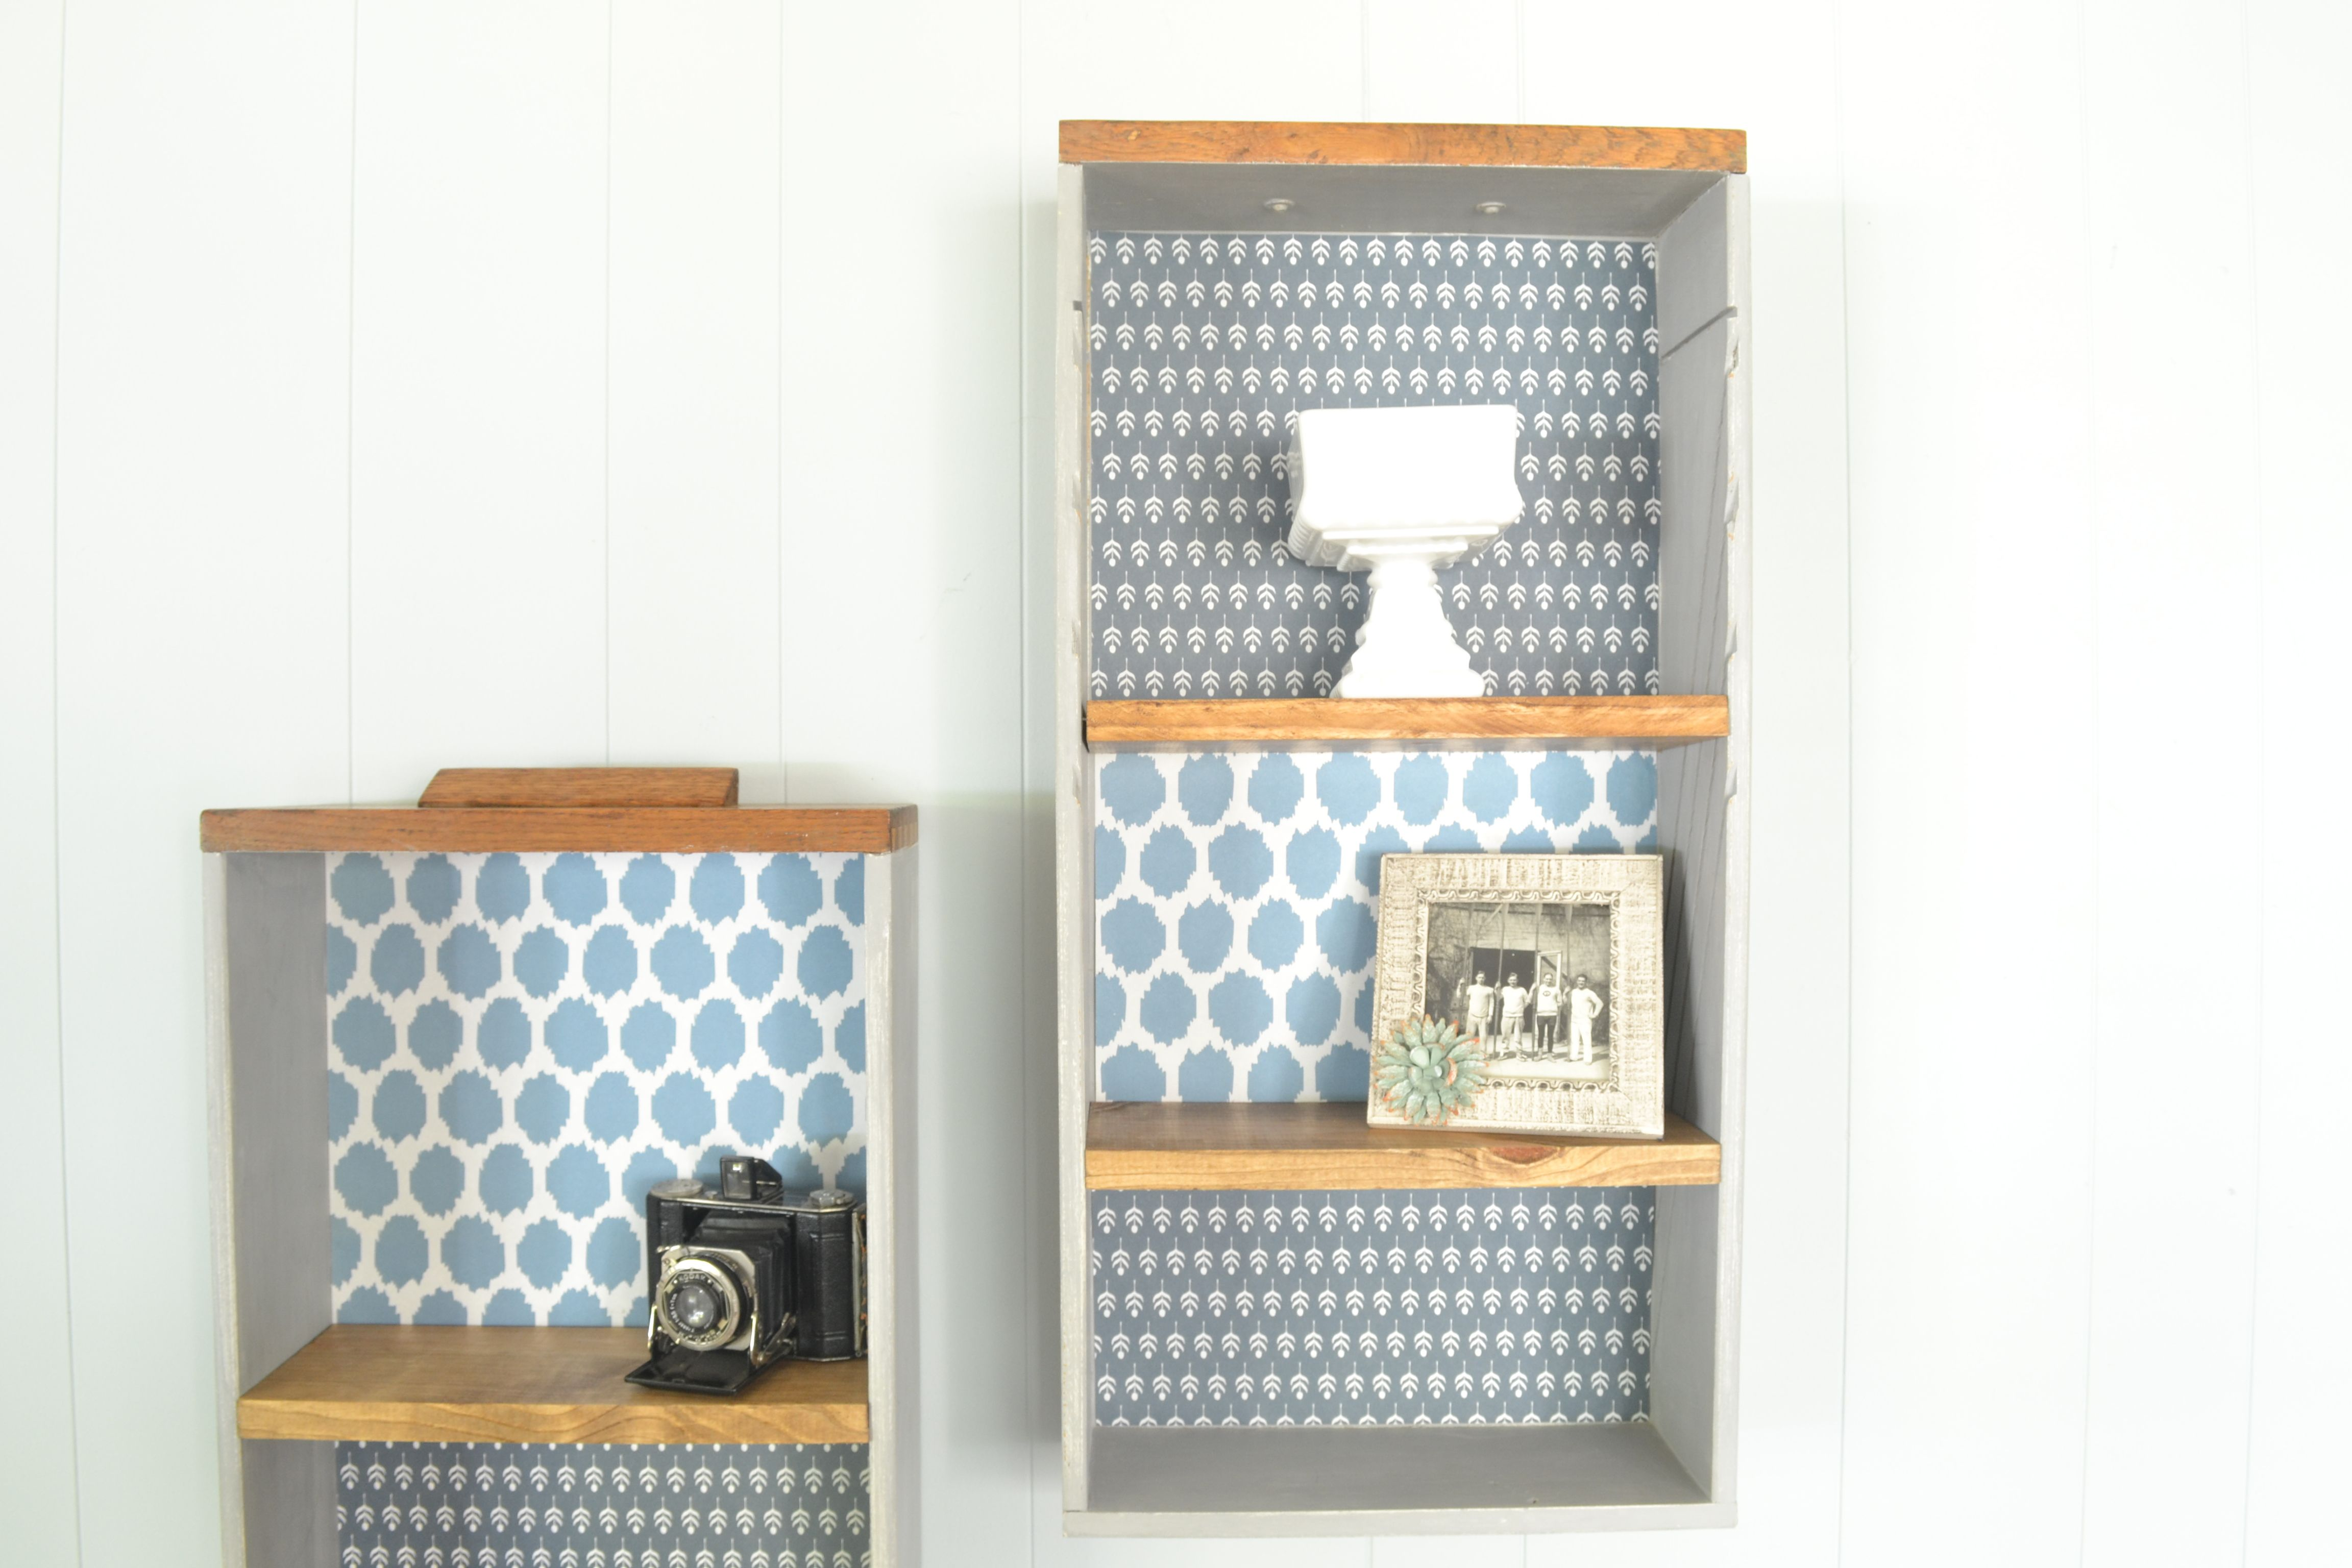 Upcycle Old Drawers Into Decorative Shelves | Craft Ideas